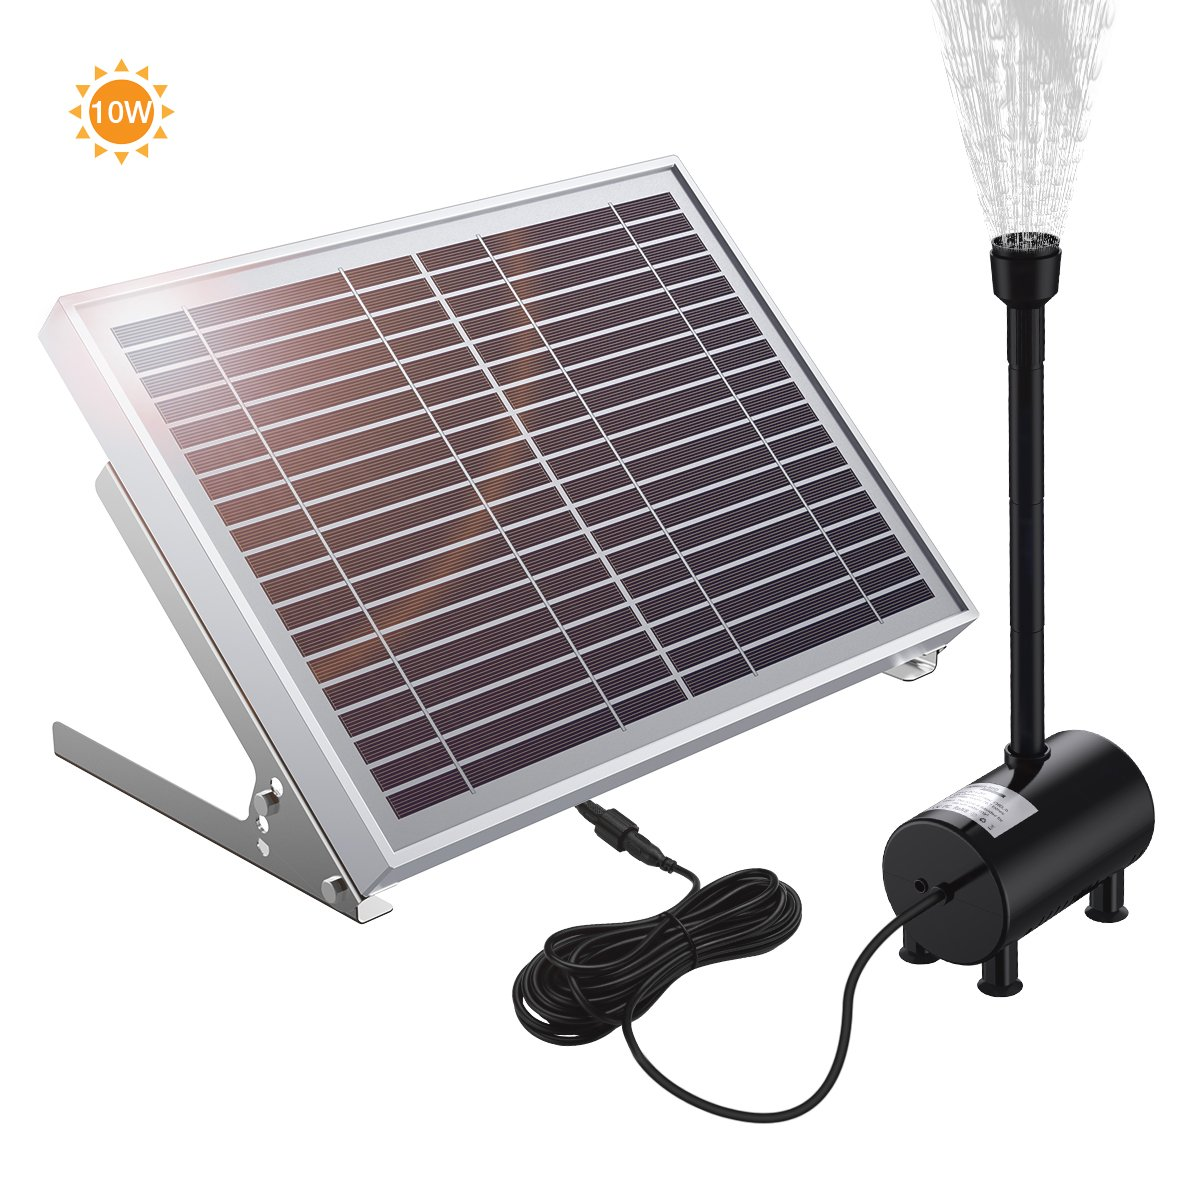 POWERADD Solar Fountain Pump, 10W Solar Powered Bird Bath Fountain Pump with 13 Nozzle Accessories 16.4ft Pump Cord Oxygen Aeration Water Fountain Pump for Garden, Yard, Pool.